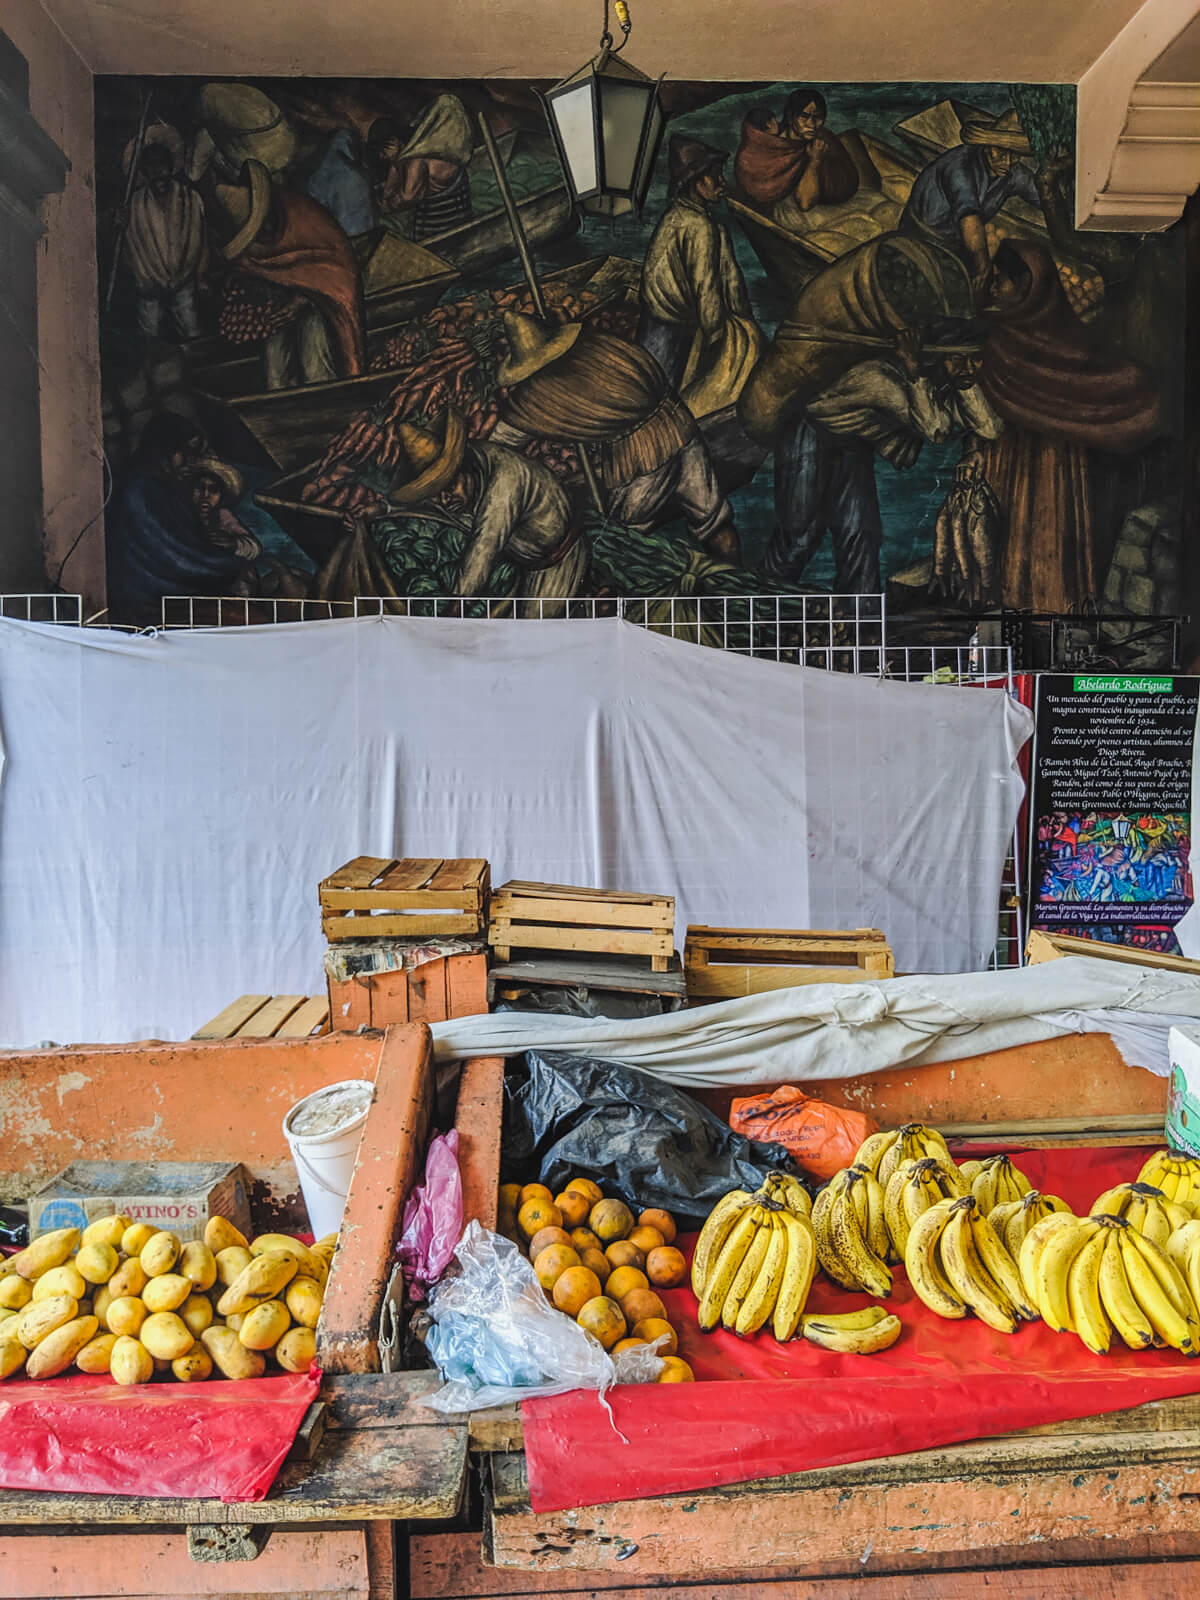 A mural painted by a student of Diego Rivera in a small city market